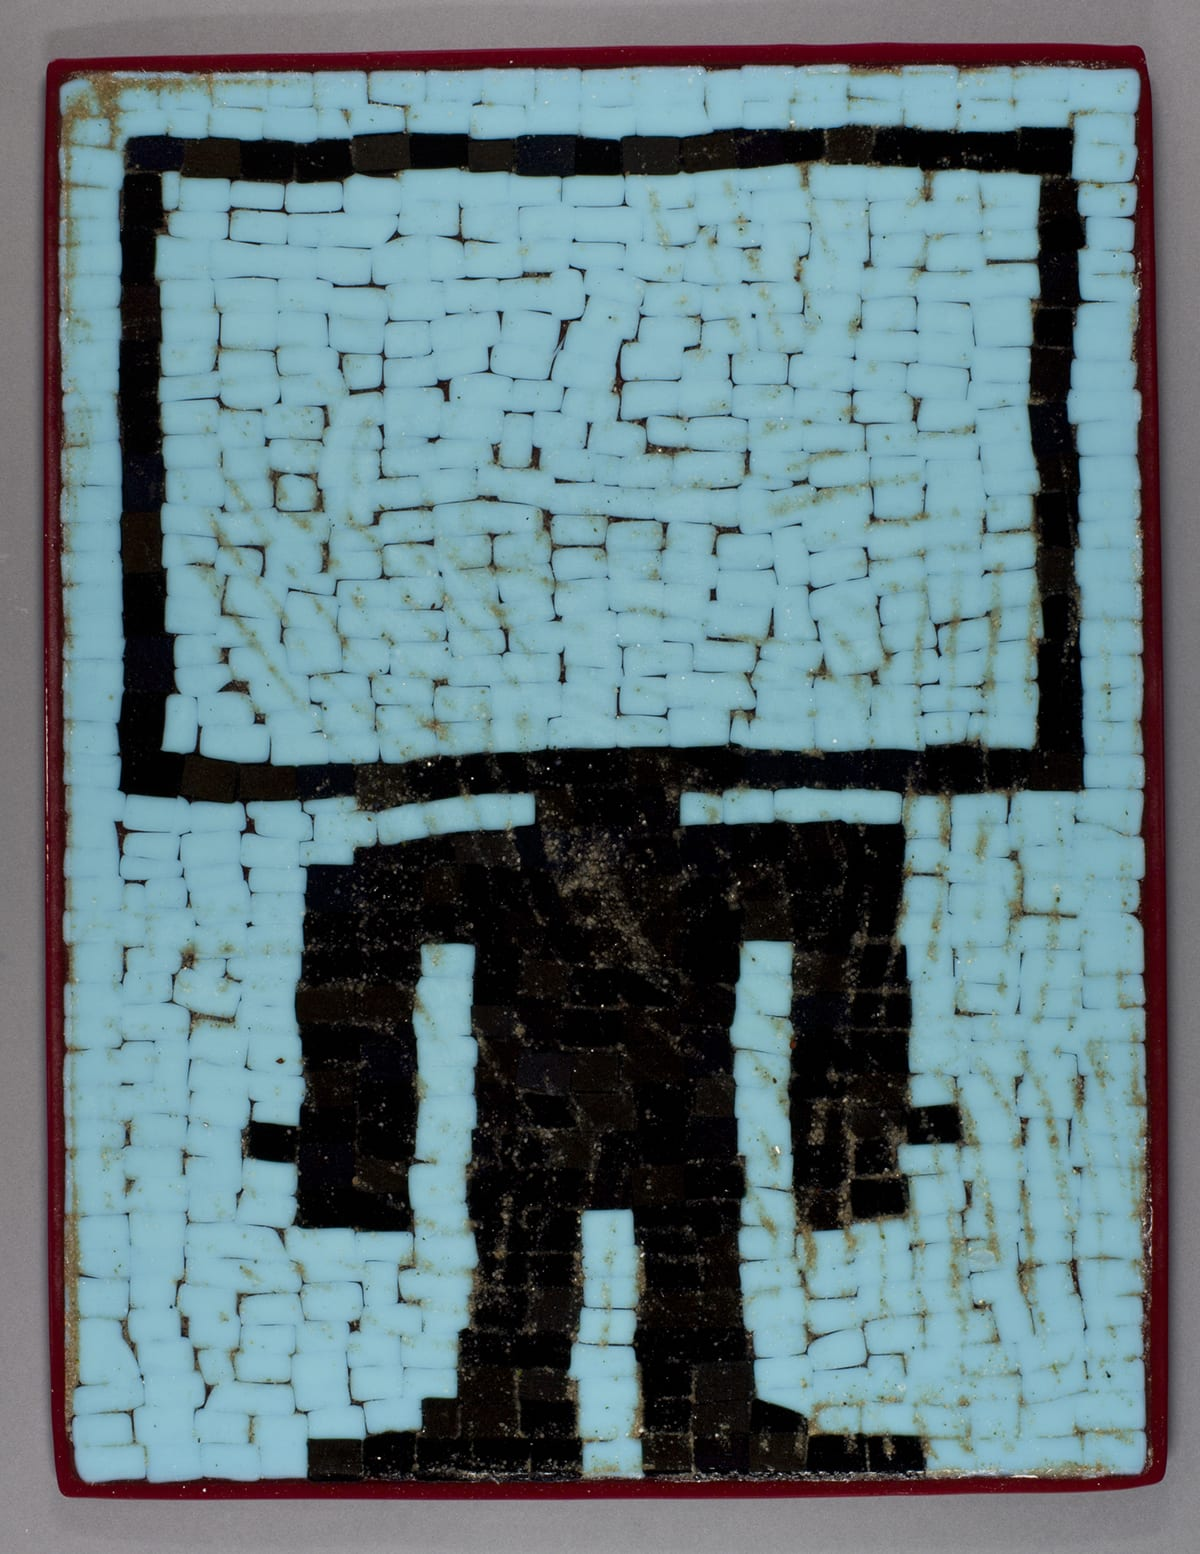 Flat Screen, Joe Feddersen, 19 ½ x 25, fused glass. A photo of a vertical, rectangular glass panel showing a simplified humanoid figure with an oversized rectangle for a head. The panel consists of a multitude of small glass rectangles that have been fused together forming the figure in black outline against a brick-like background pattern. The figure's head is the outline of a large, horizontal rectangle resembling a flat screen TV. The neck, shoulders, arms, hands with thumbs sticking out, a torso, two legs and feet complete the figure. The figure is set against light blue glass rectangles that are stacked to form uneven rows with space between them being black. The piece is edged with a thin, red border.